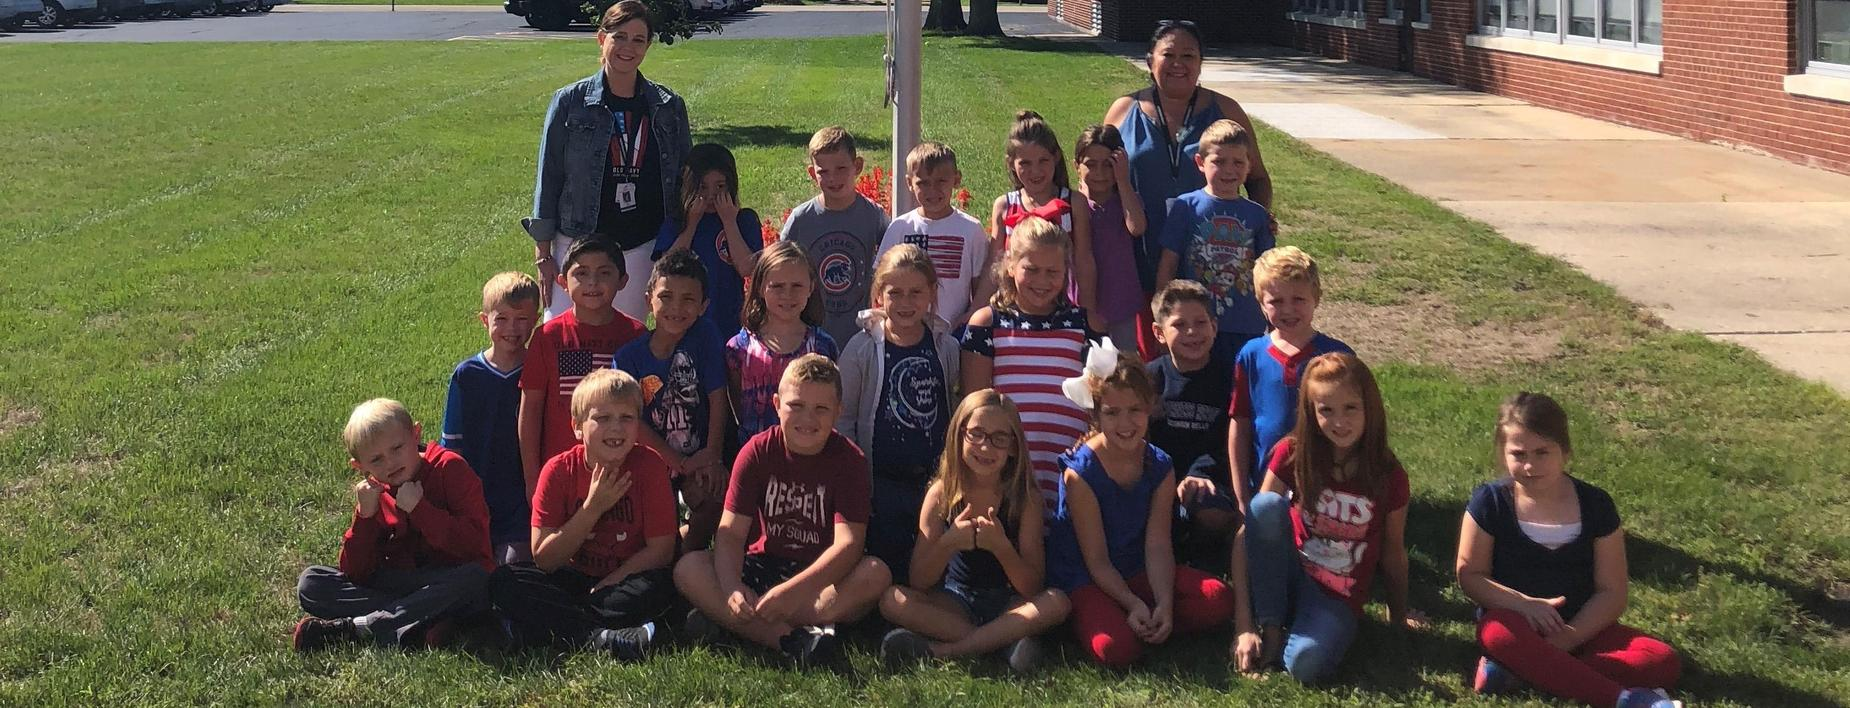 At the flagpole CCES